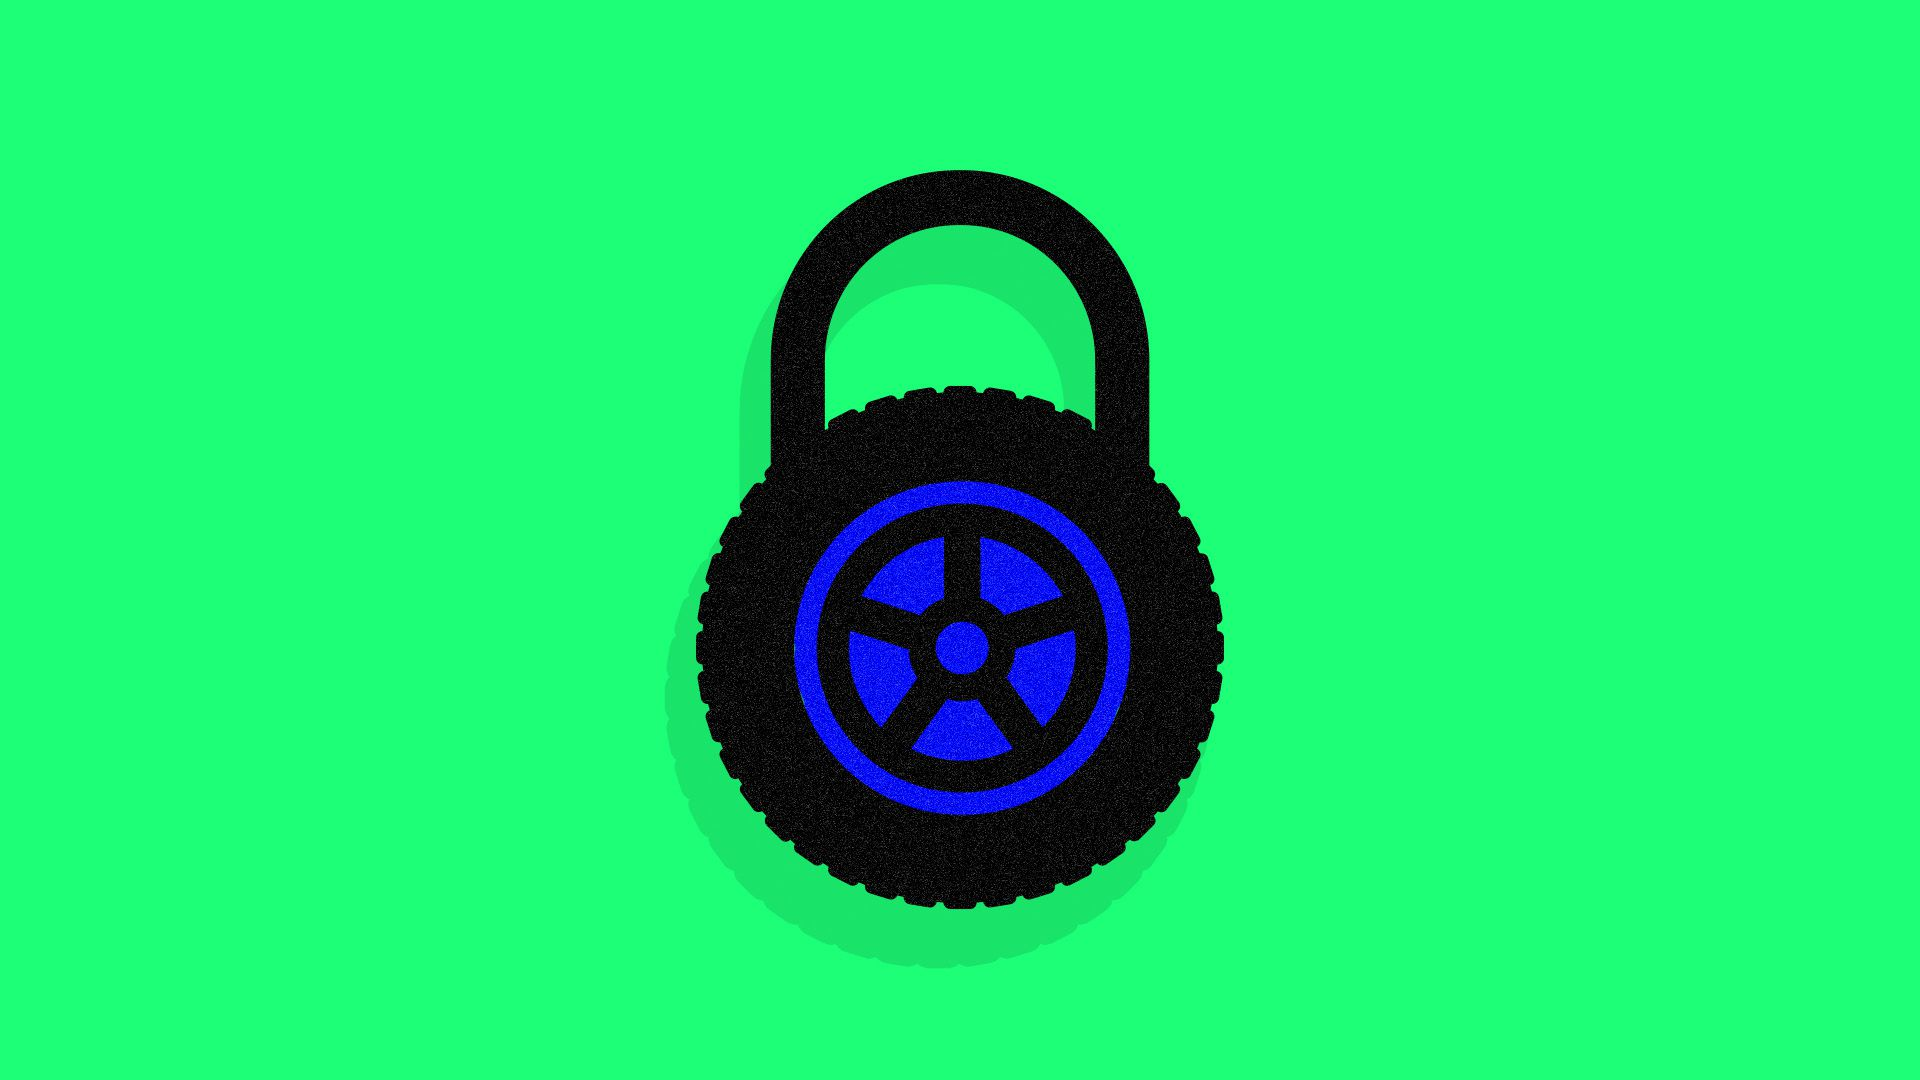 Illustration of a padlock made out of a tire